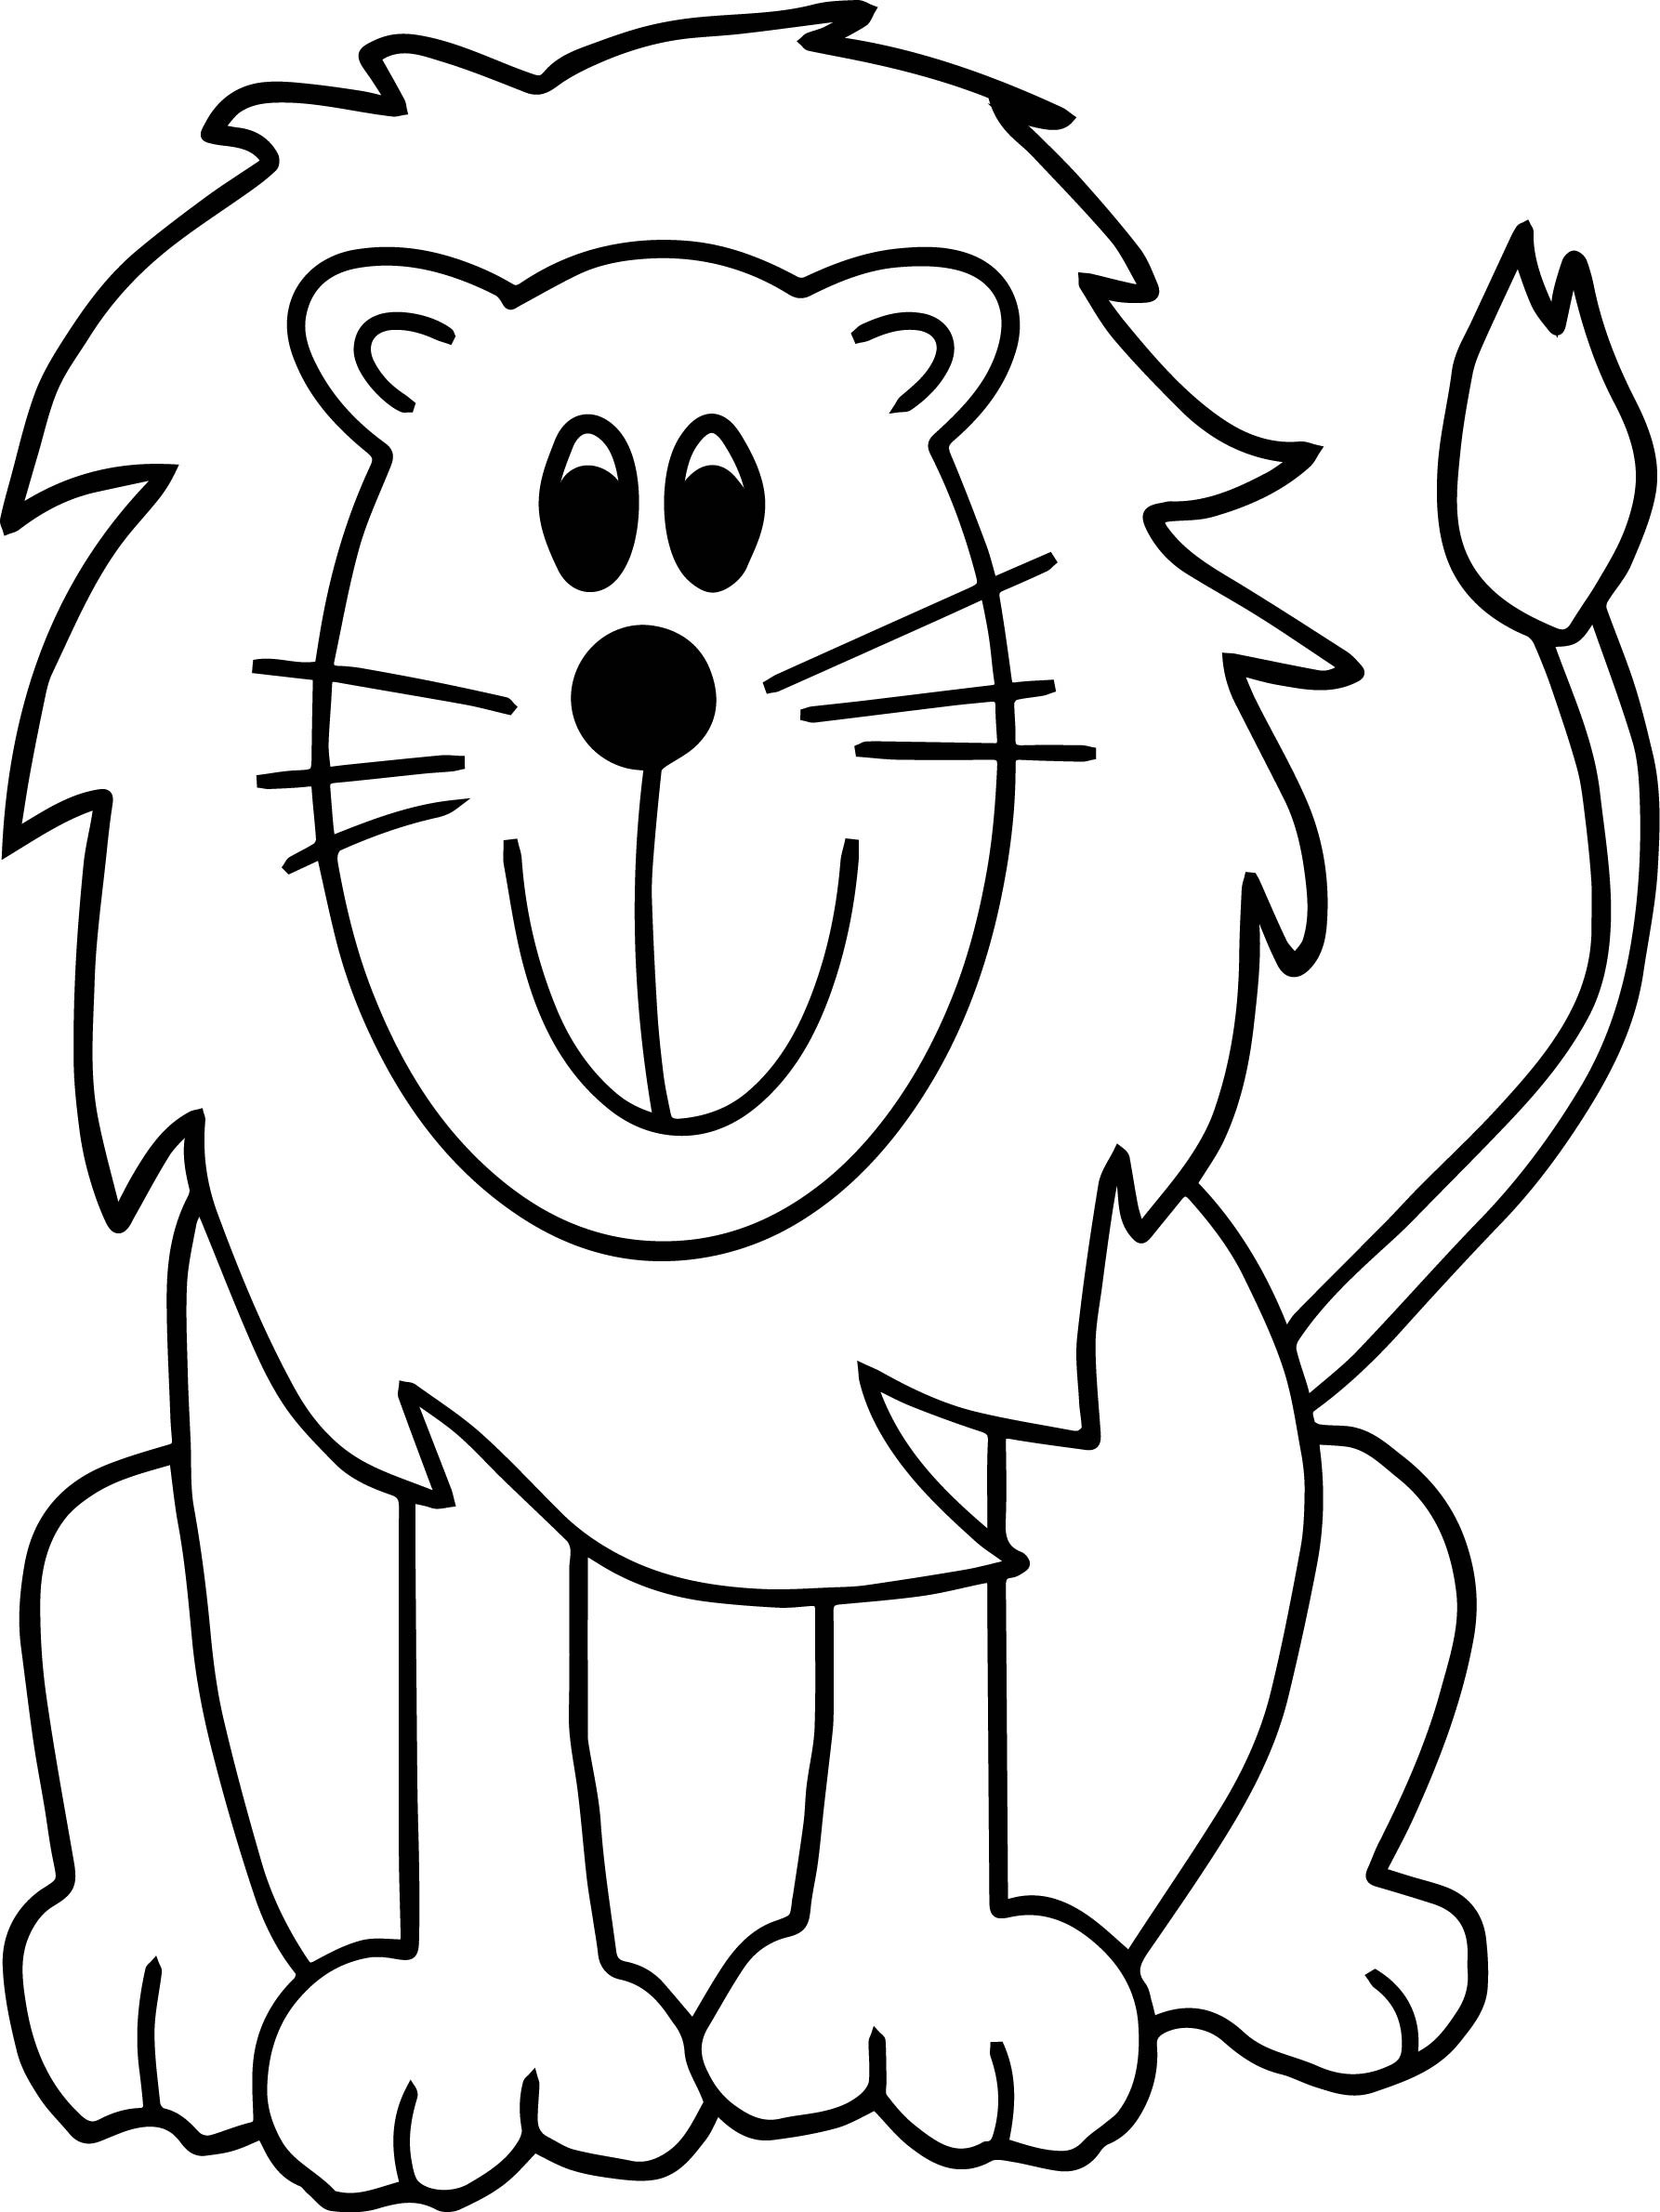 baby zoo animal coloring pages zoo coloring pages free download on clipartmag pages animal zoo coloring baby